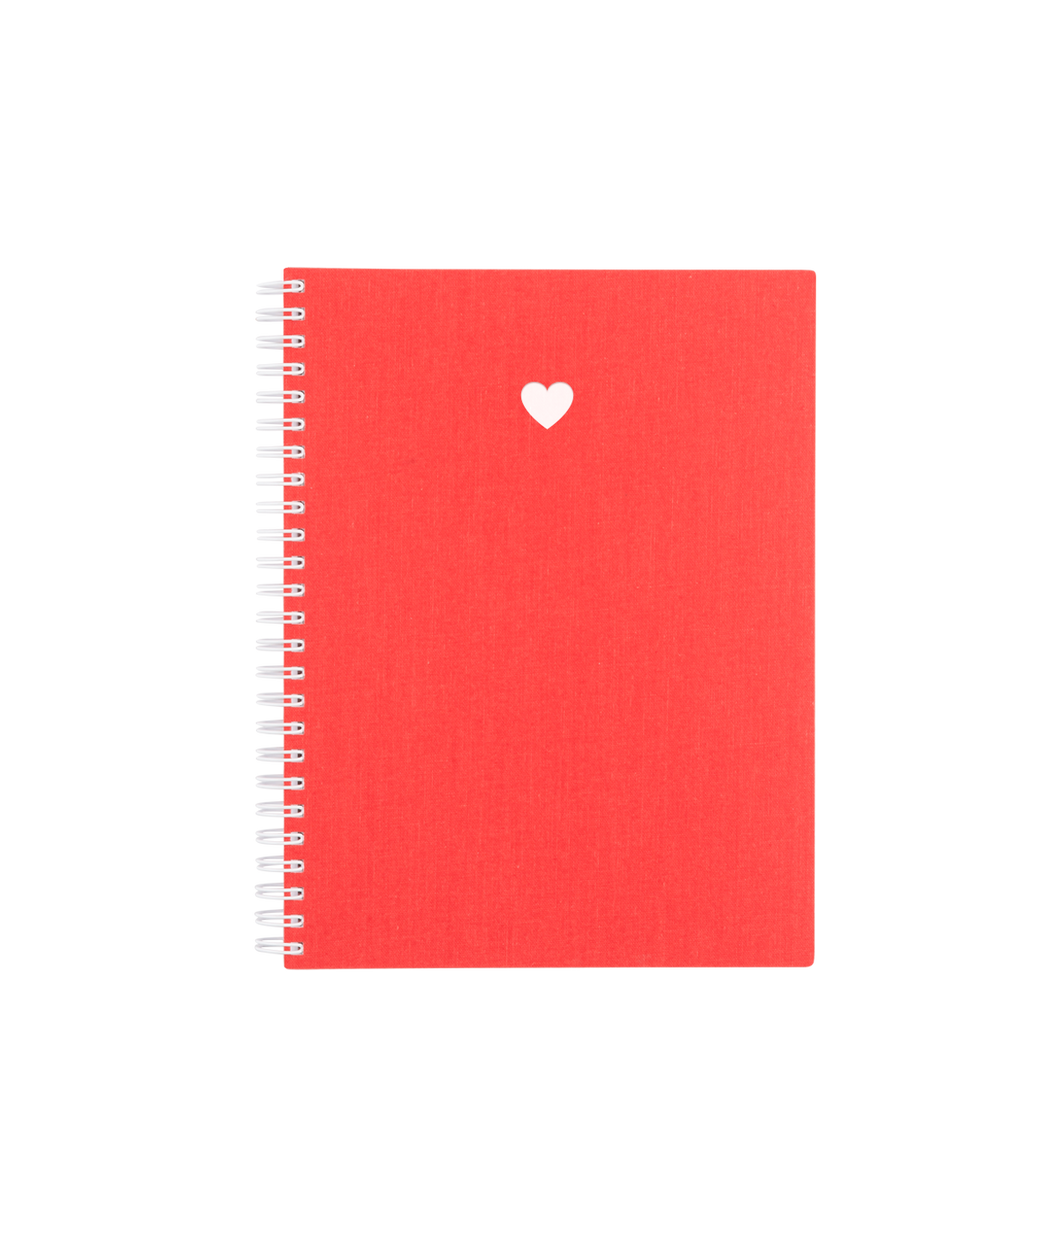 HEART WORKBOOK IN STRAWBERRY